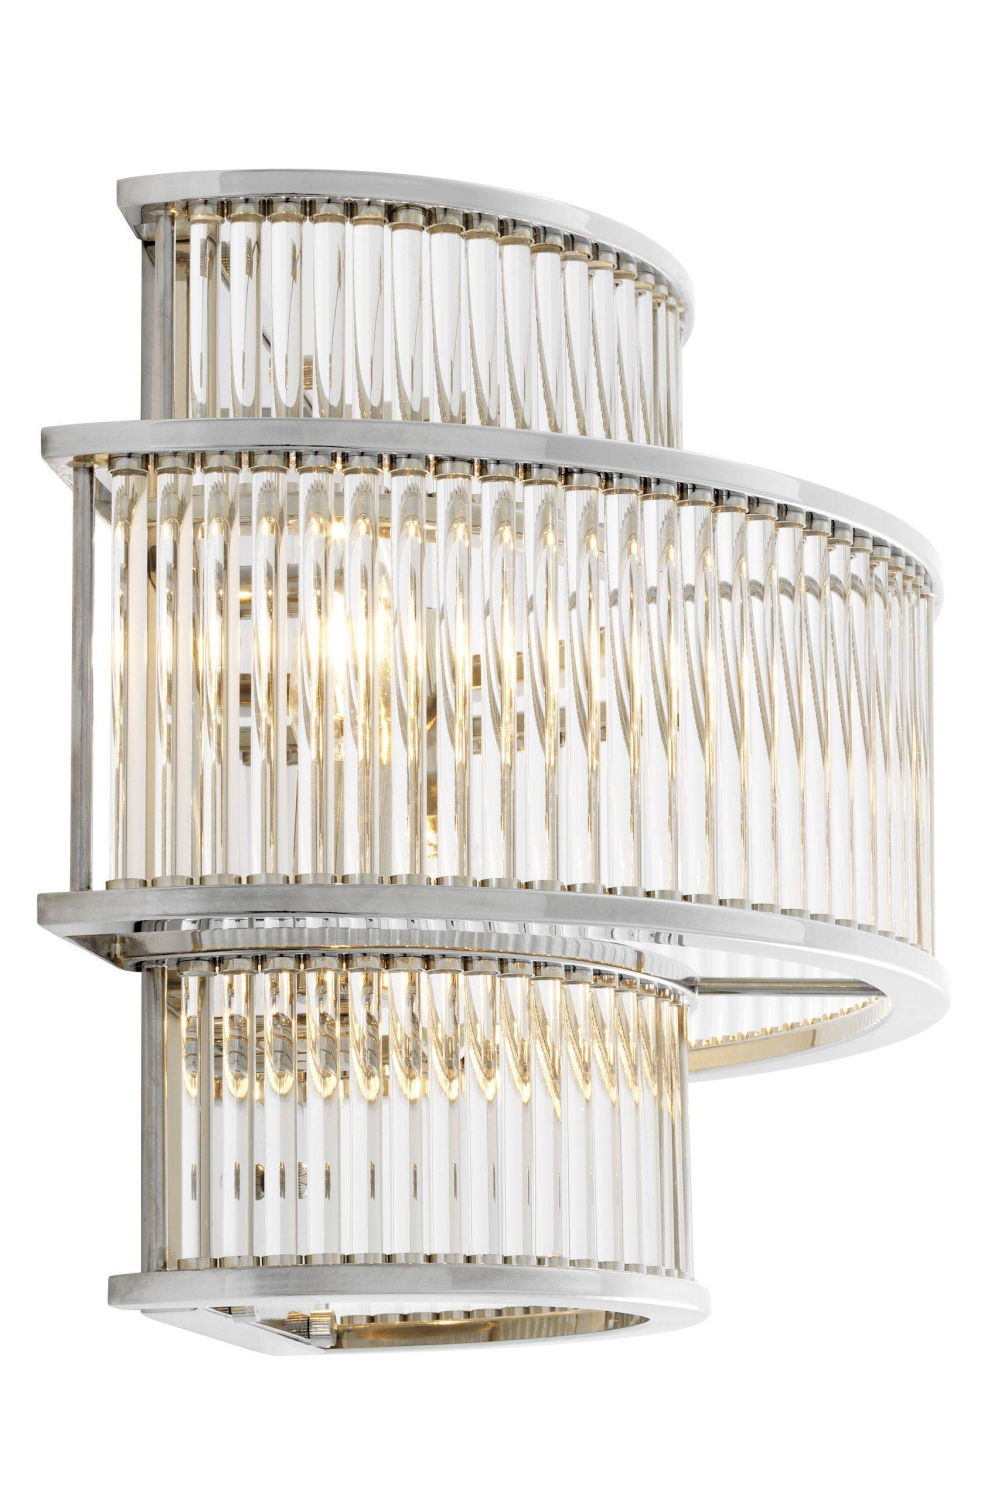 Silver Glass Wall Sconce | Eichholtz Mancini